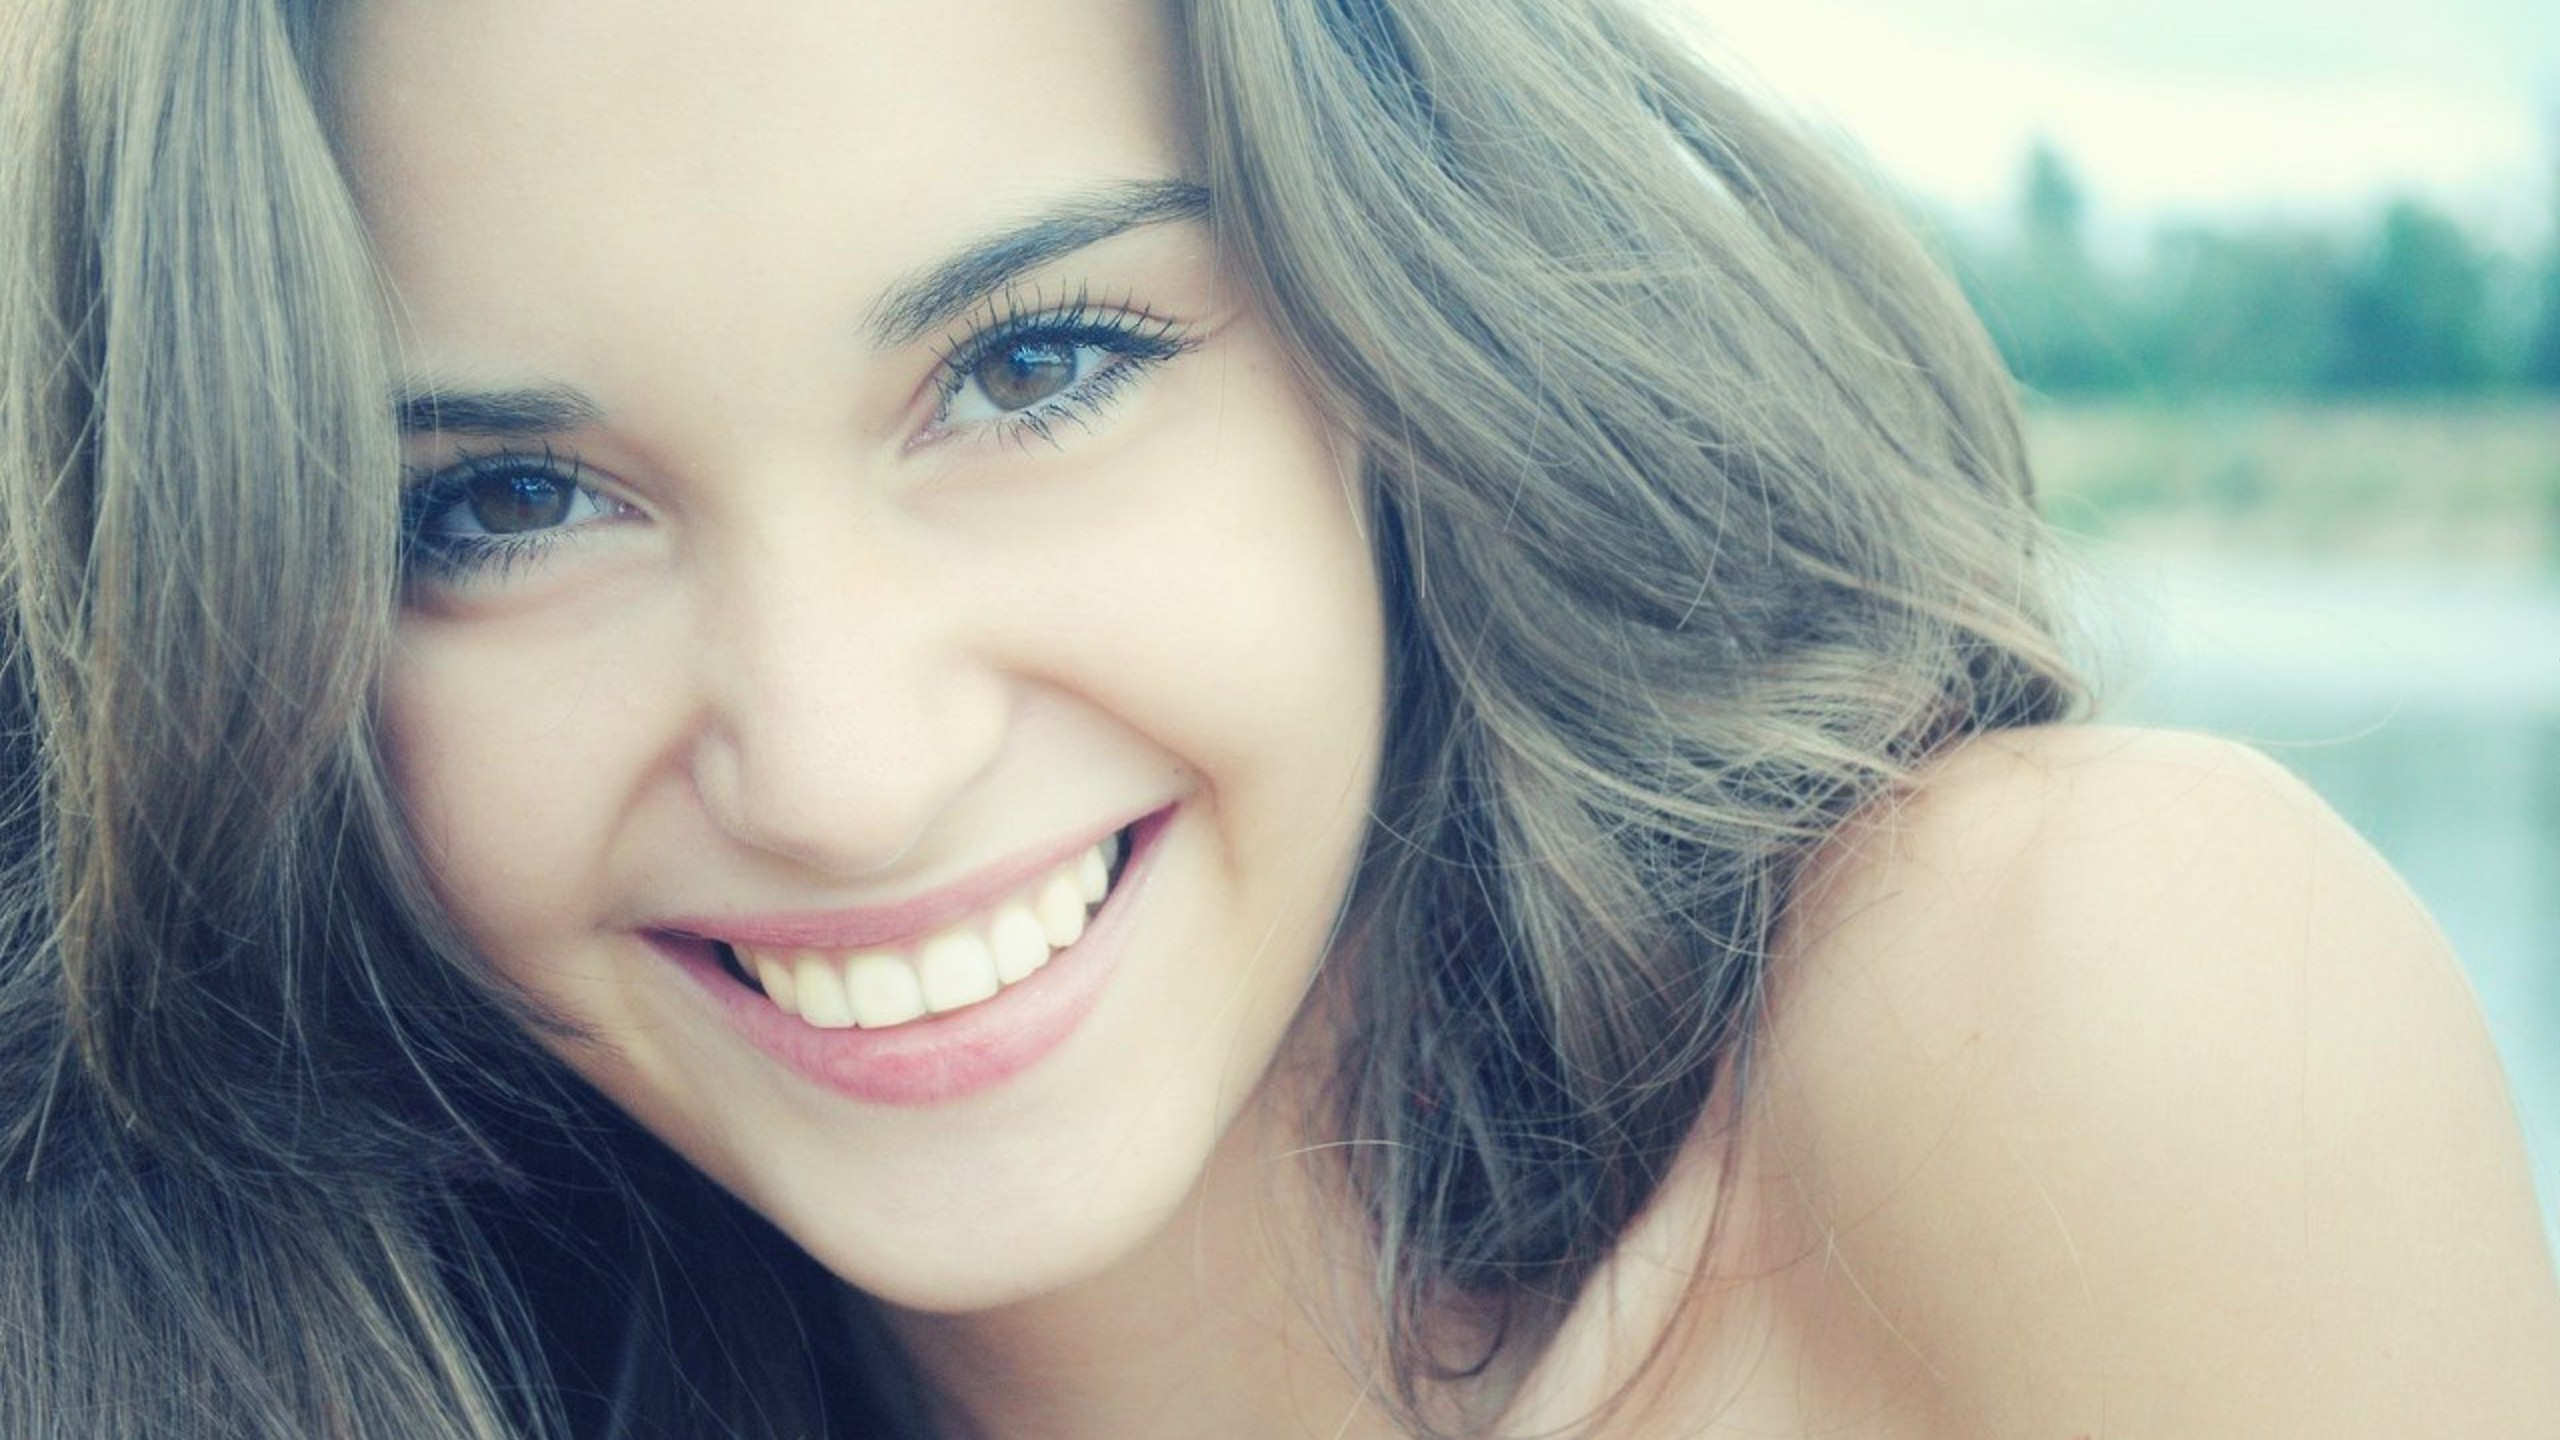 Download 2560x1440 White teeth smile cute girl wallpaper